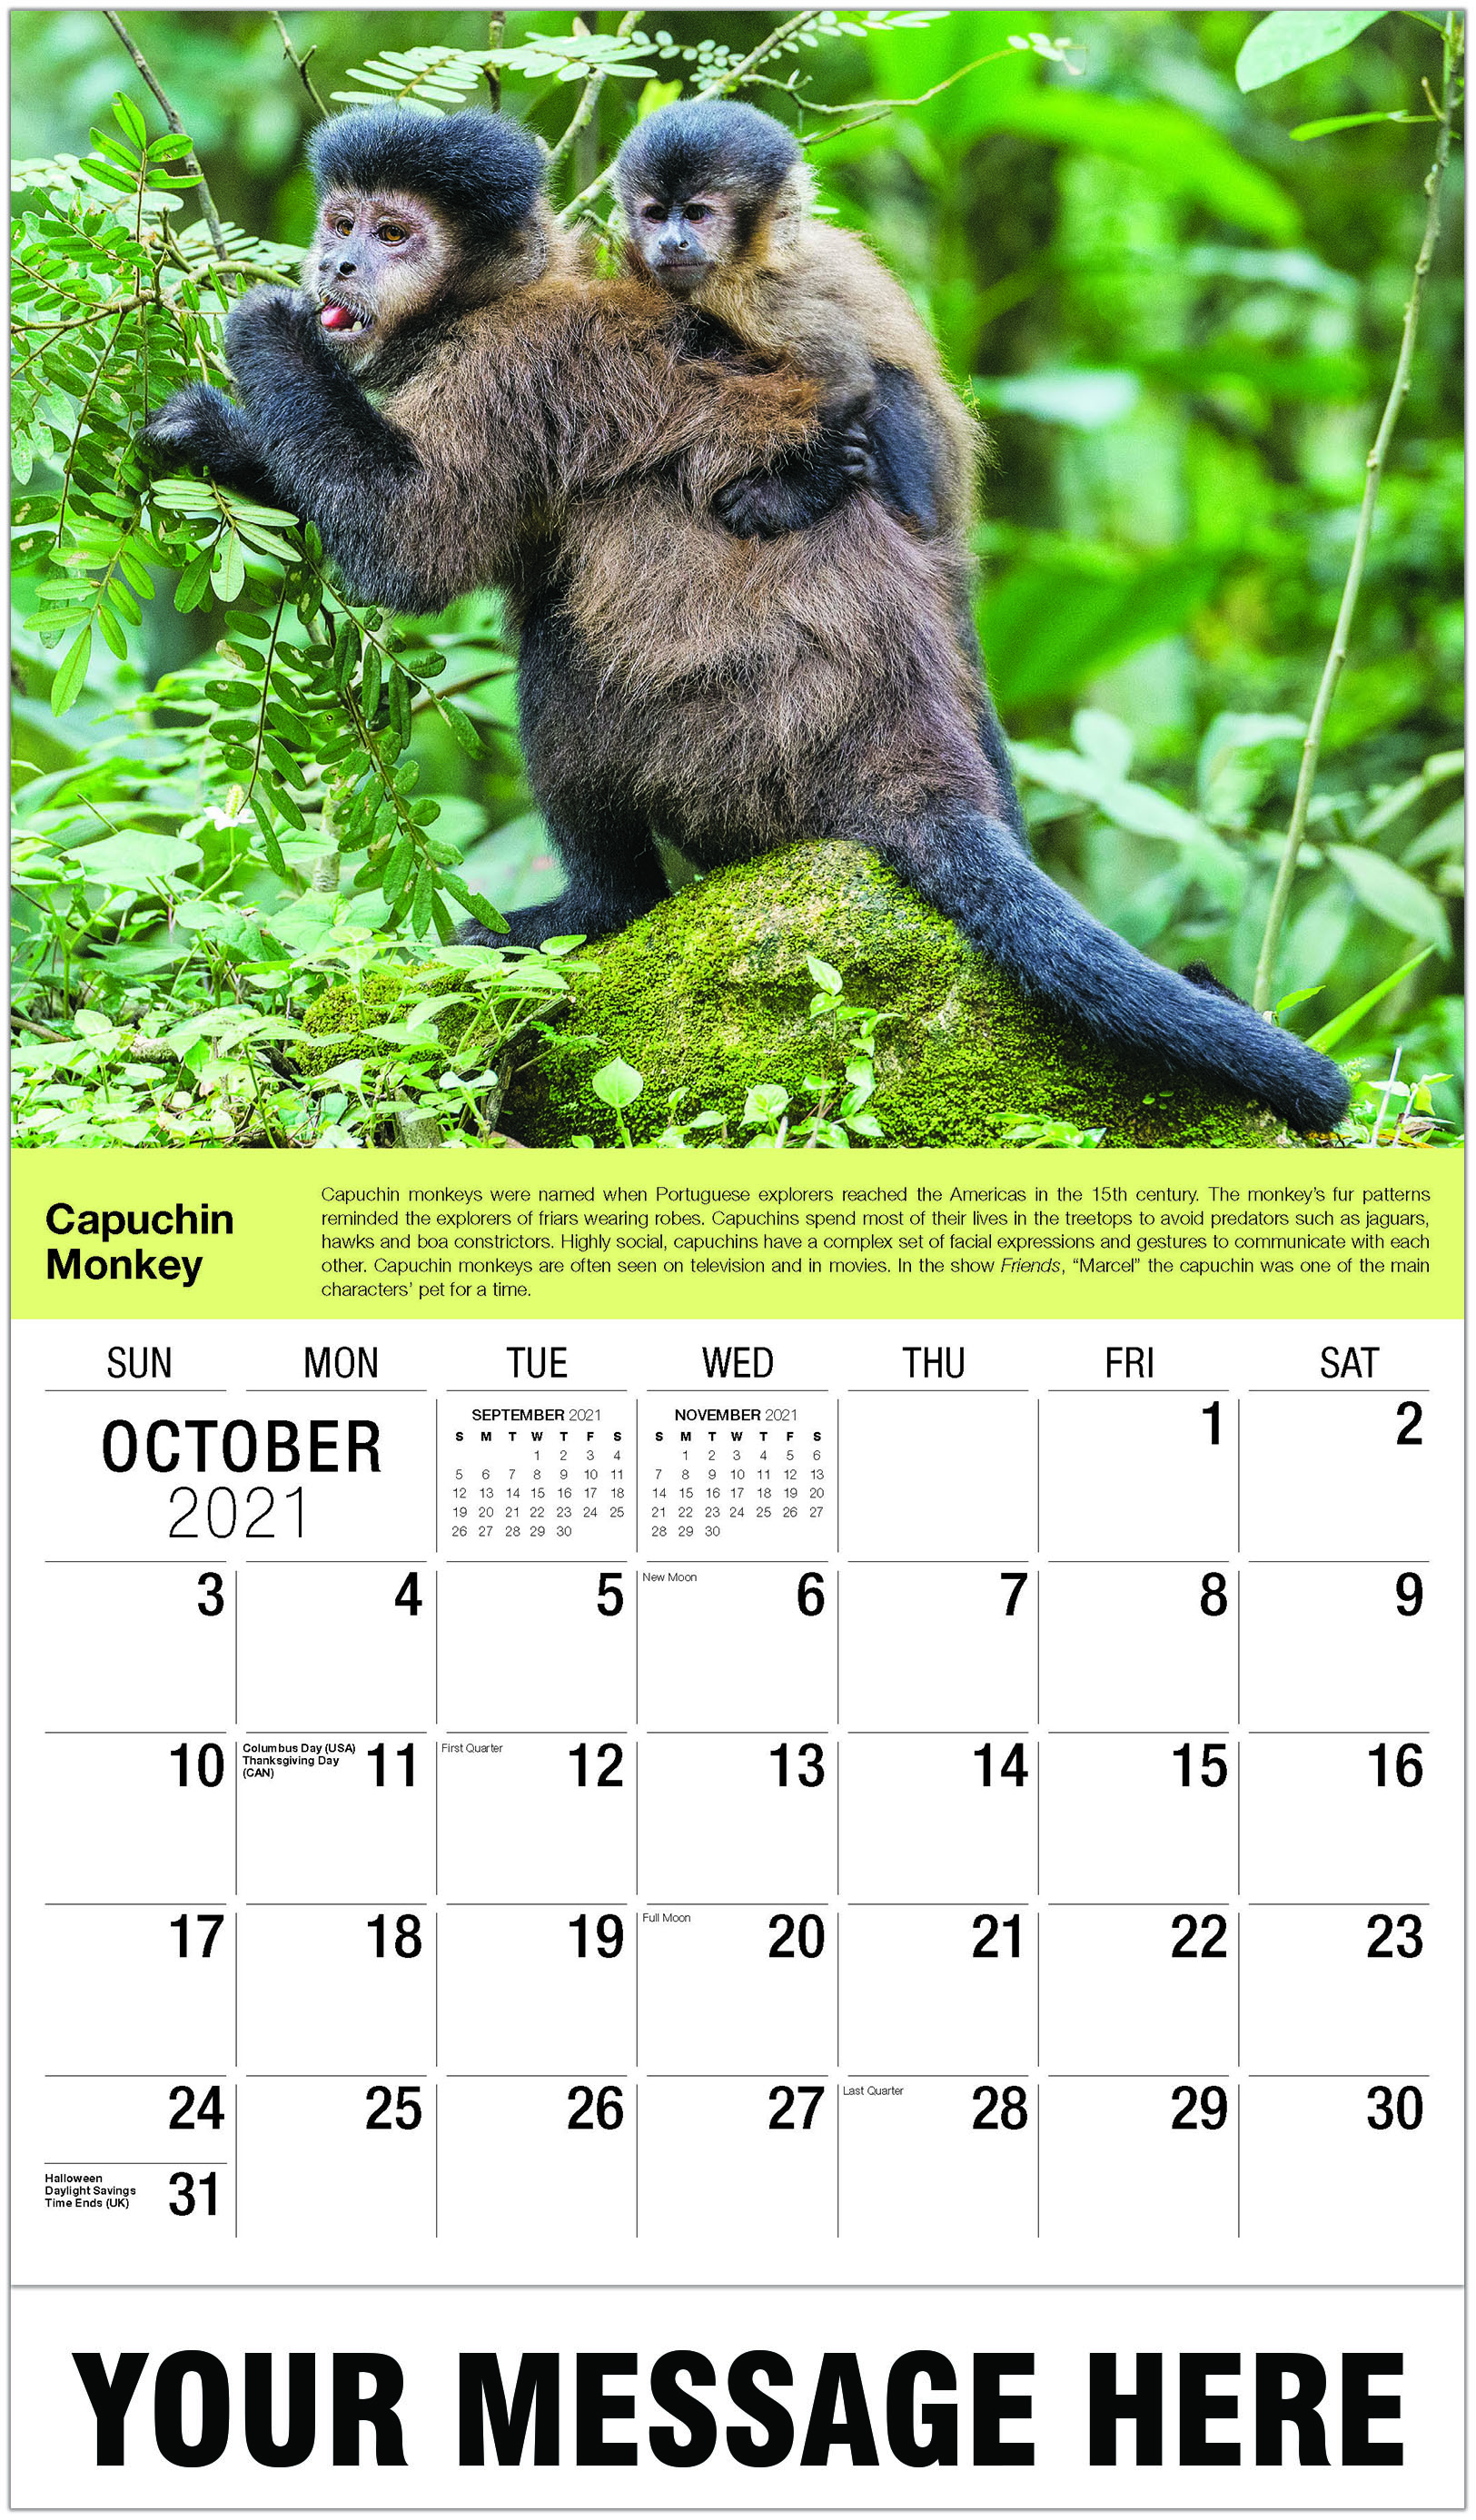 Capuchin Monkey - October - International Wildlife 2021 Promotional Calendar